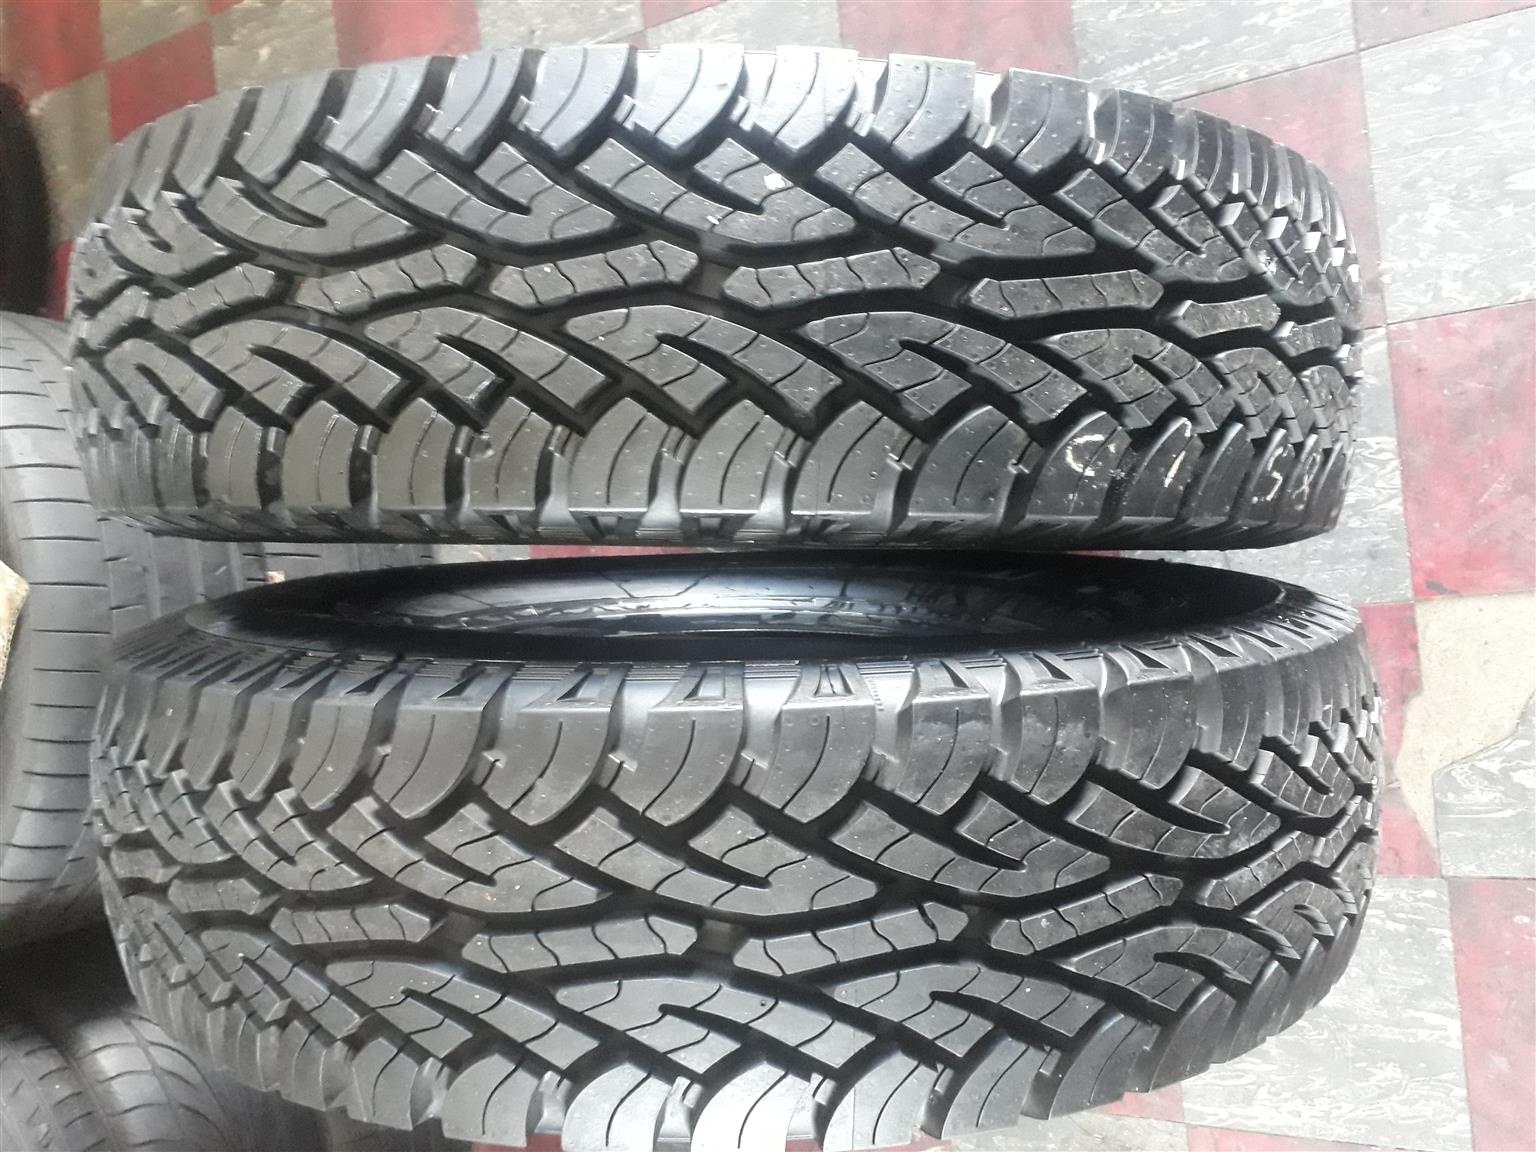 2 x 235/85/16C Continental cross contact tyres for Landcruser